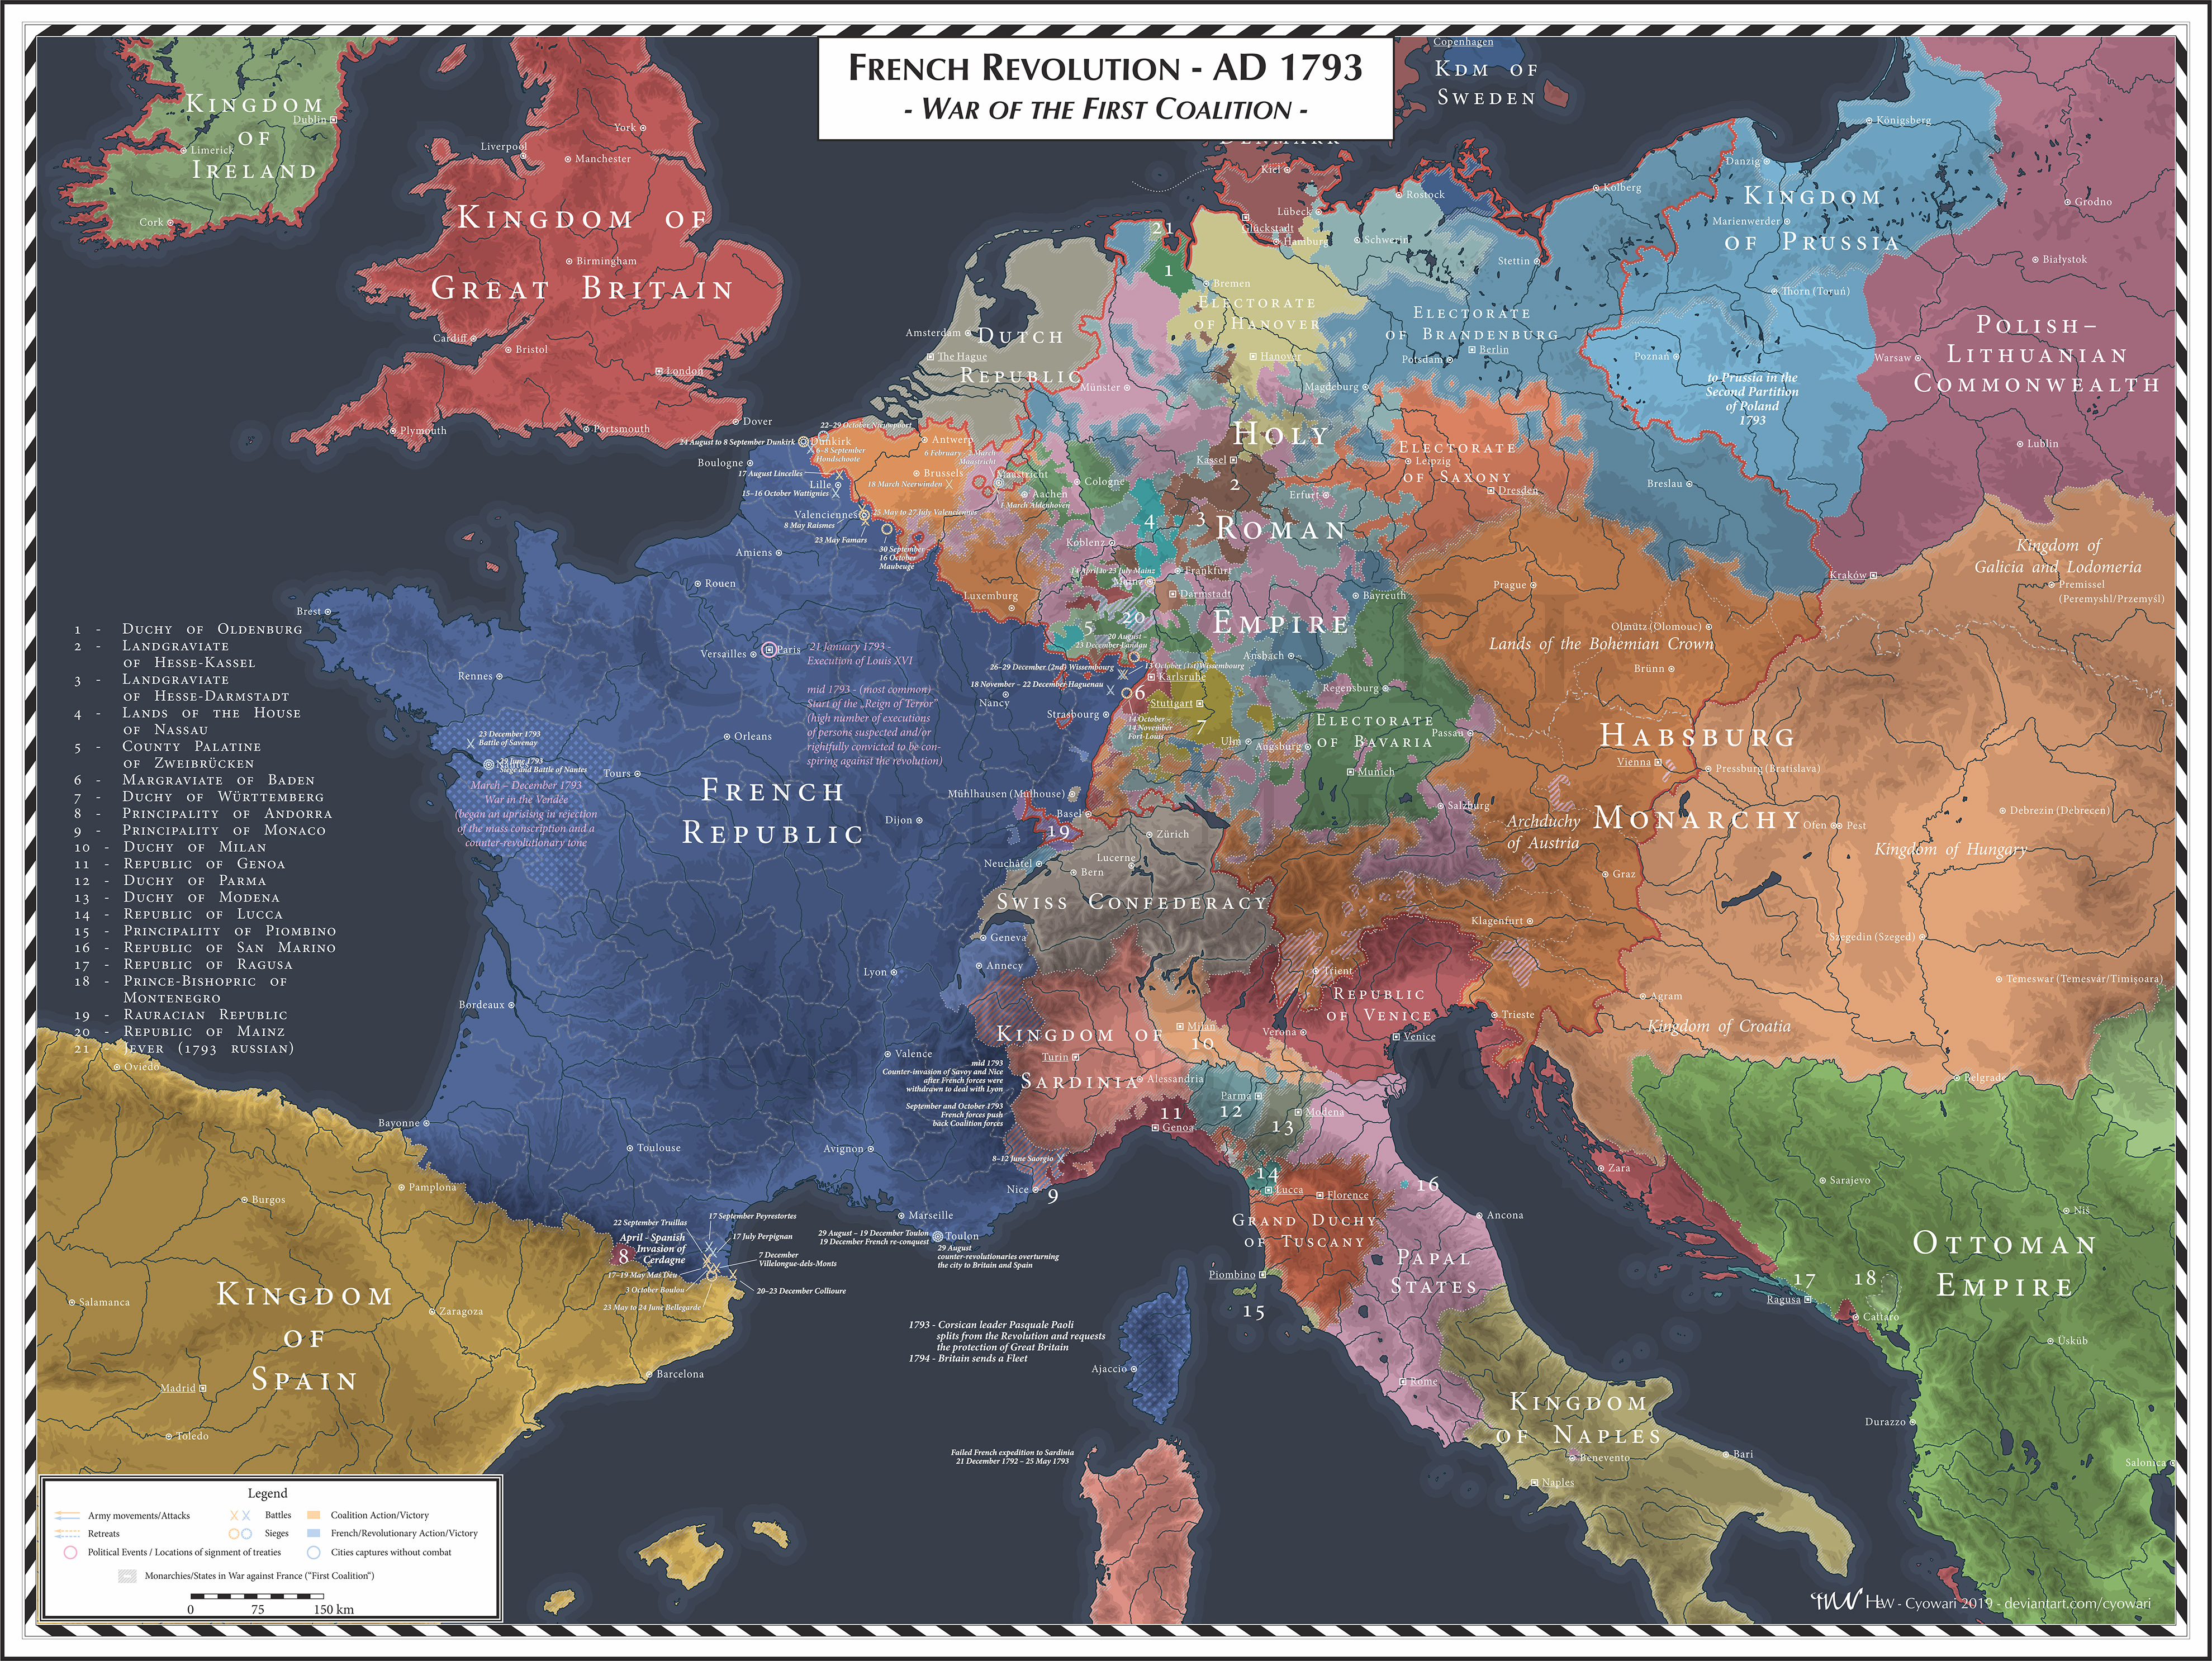 French Revolution - 1793 - First Coalition